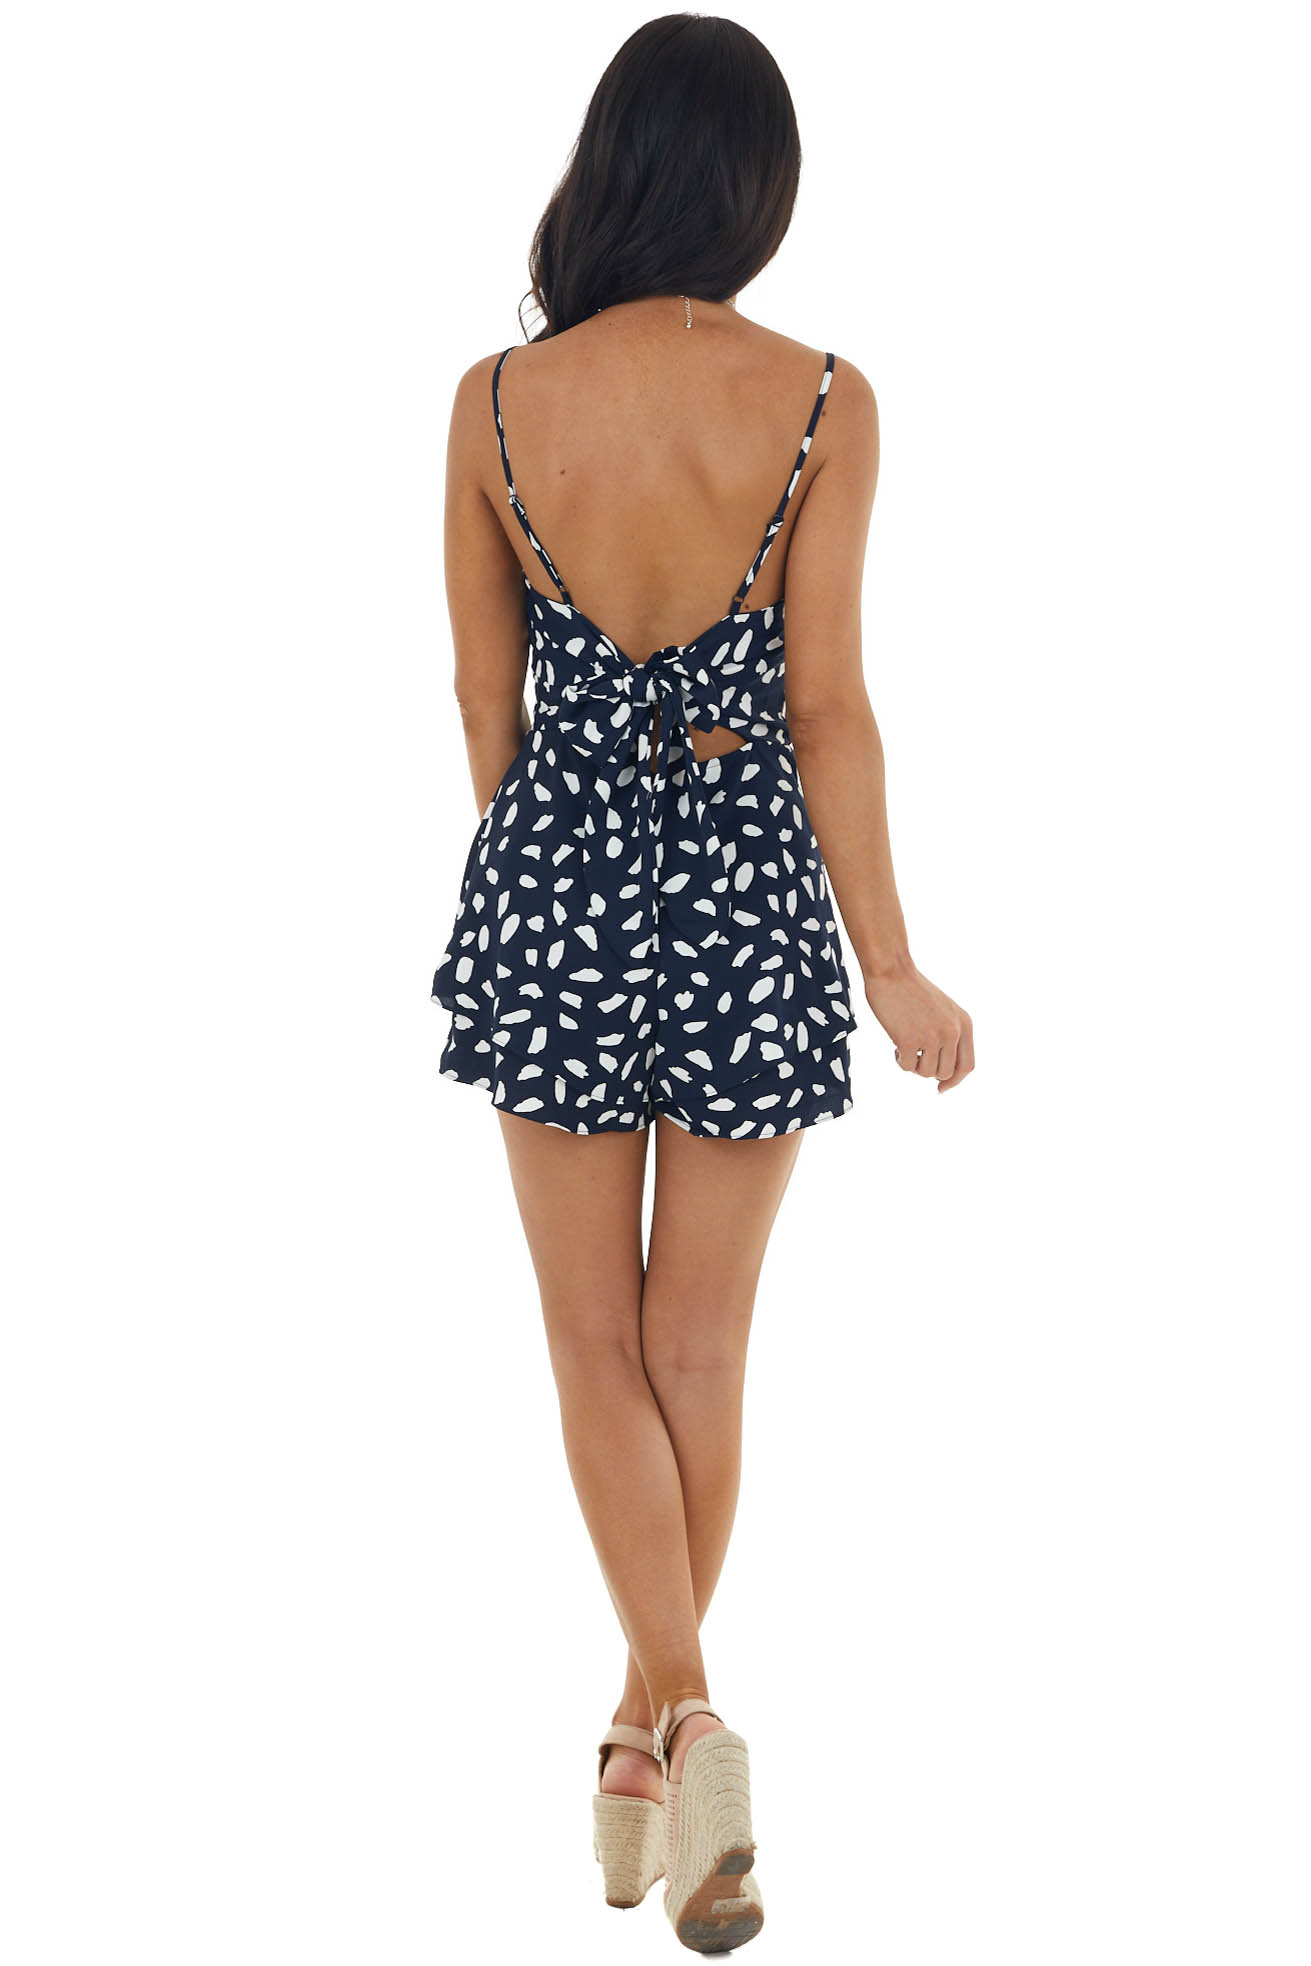 Dark Navy Abstract Print Strappy Woven Romper with Tie Back